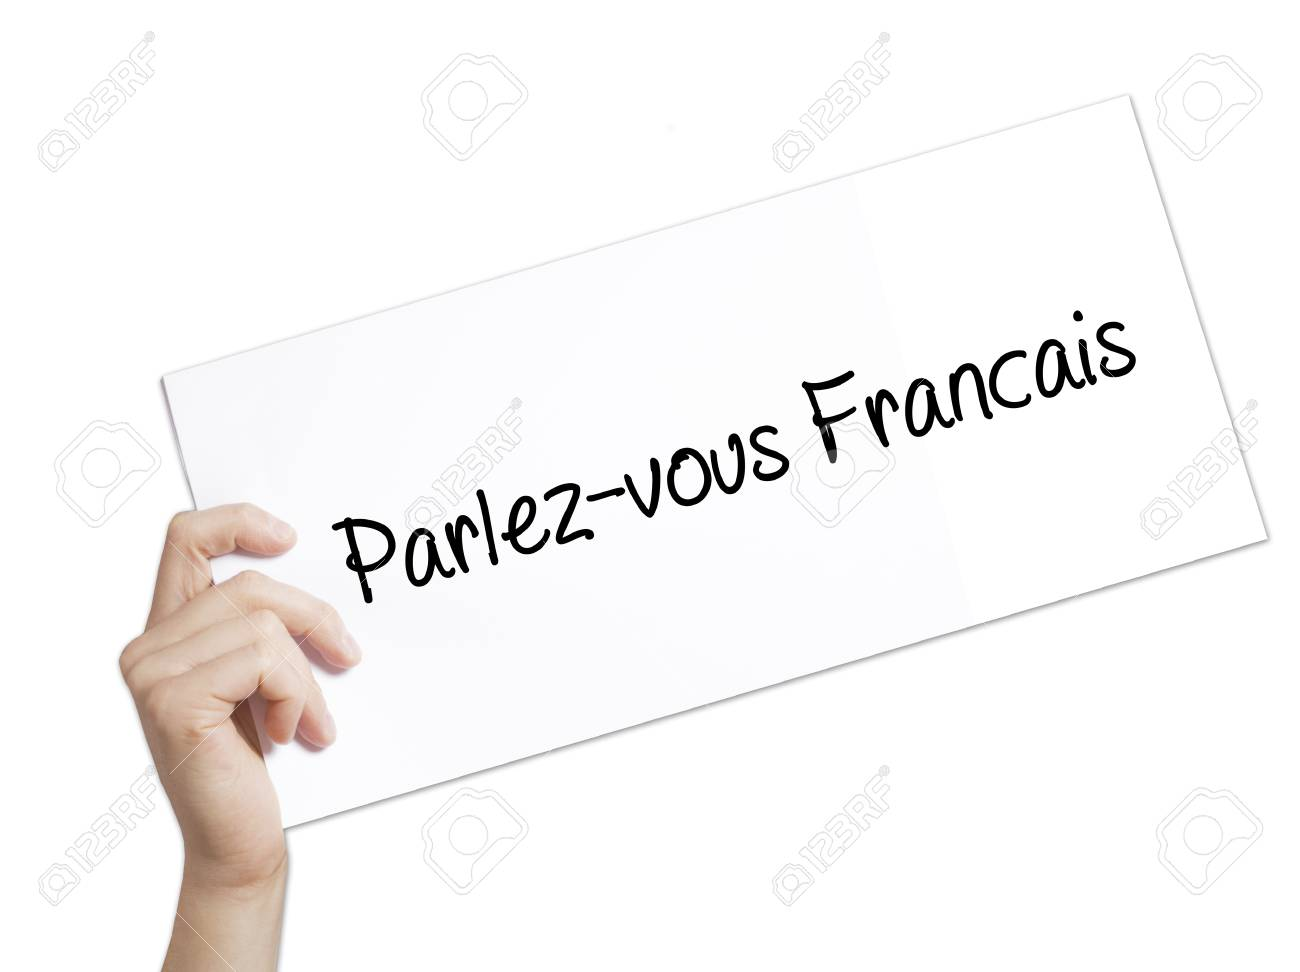 Parlez Vous Francais Do You Speak French In French Sign On Stock Photo Picture And Royalty Free Image Image 75645395